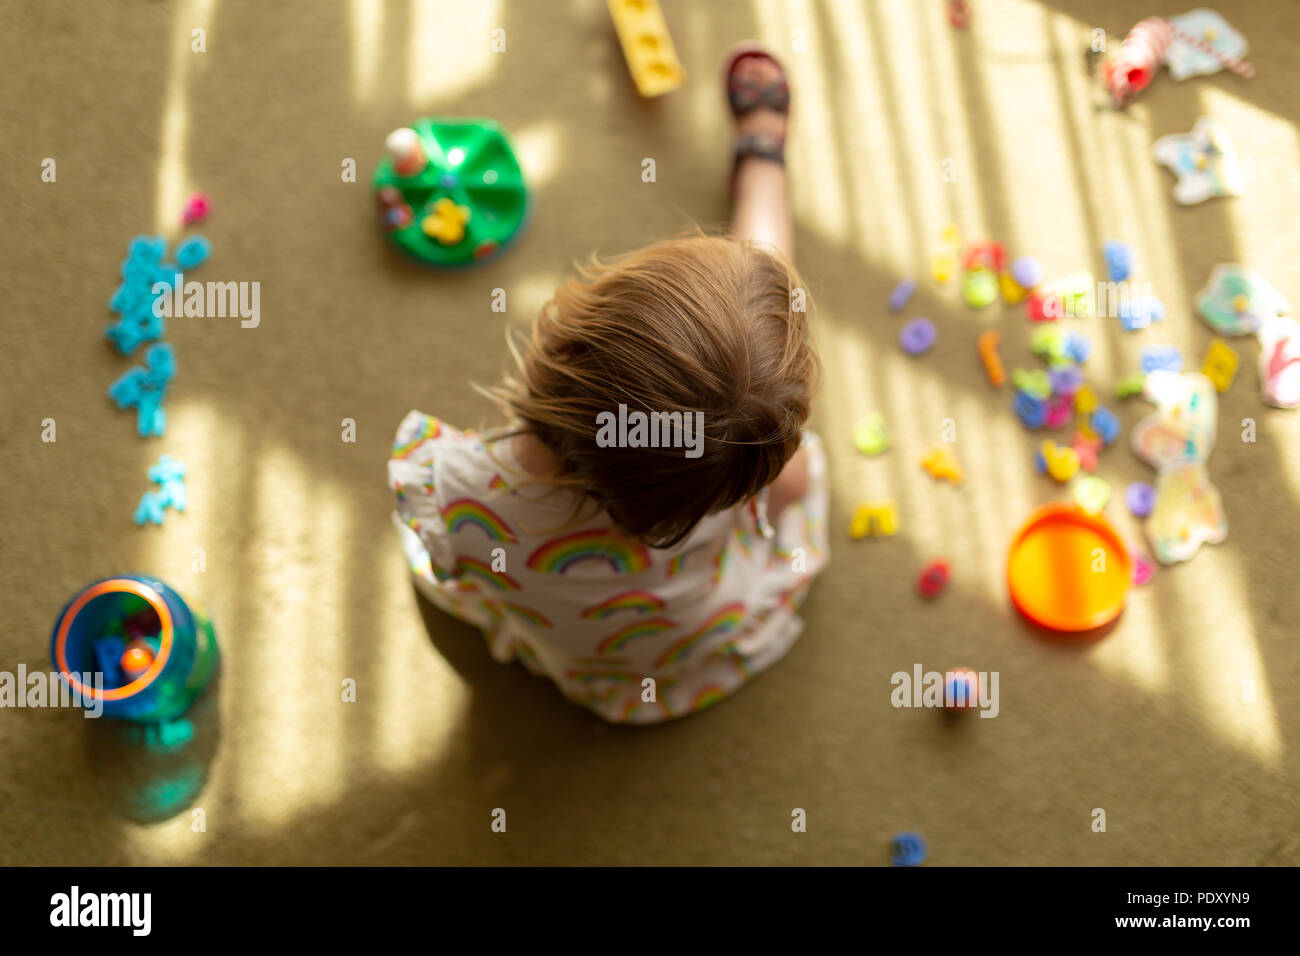 Young girl sat on floor surrounded by toys deep in thought, shot from above with narrow depth of field. - Stock Image